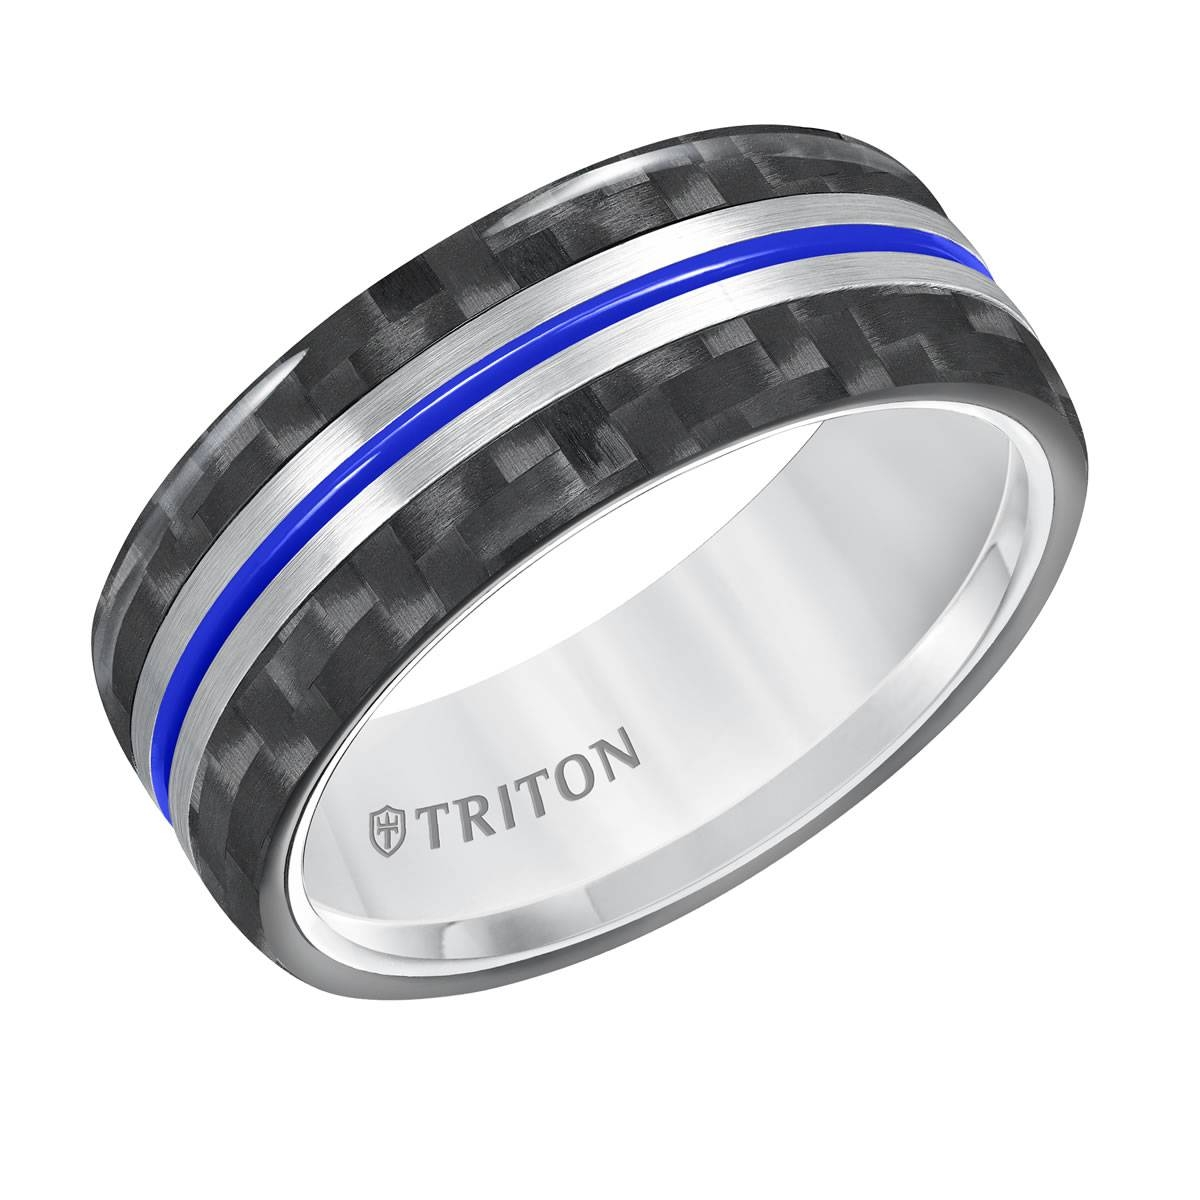 very triton large ring women by rings are paired bands an with xs xl t small usually engagement wedding worn and modern generally